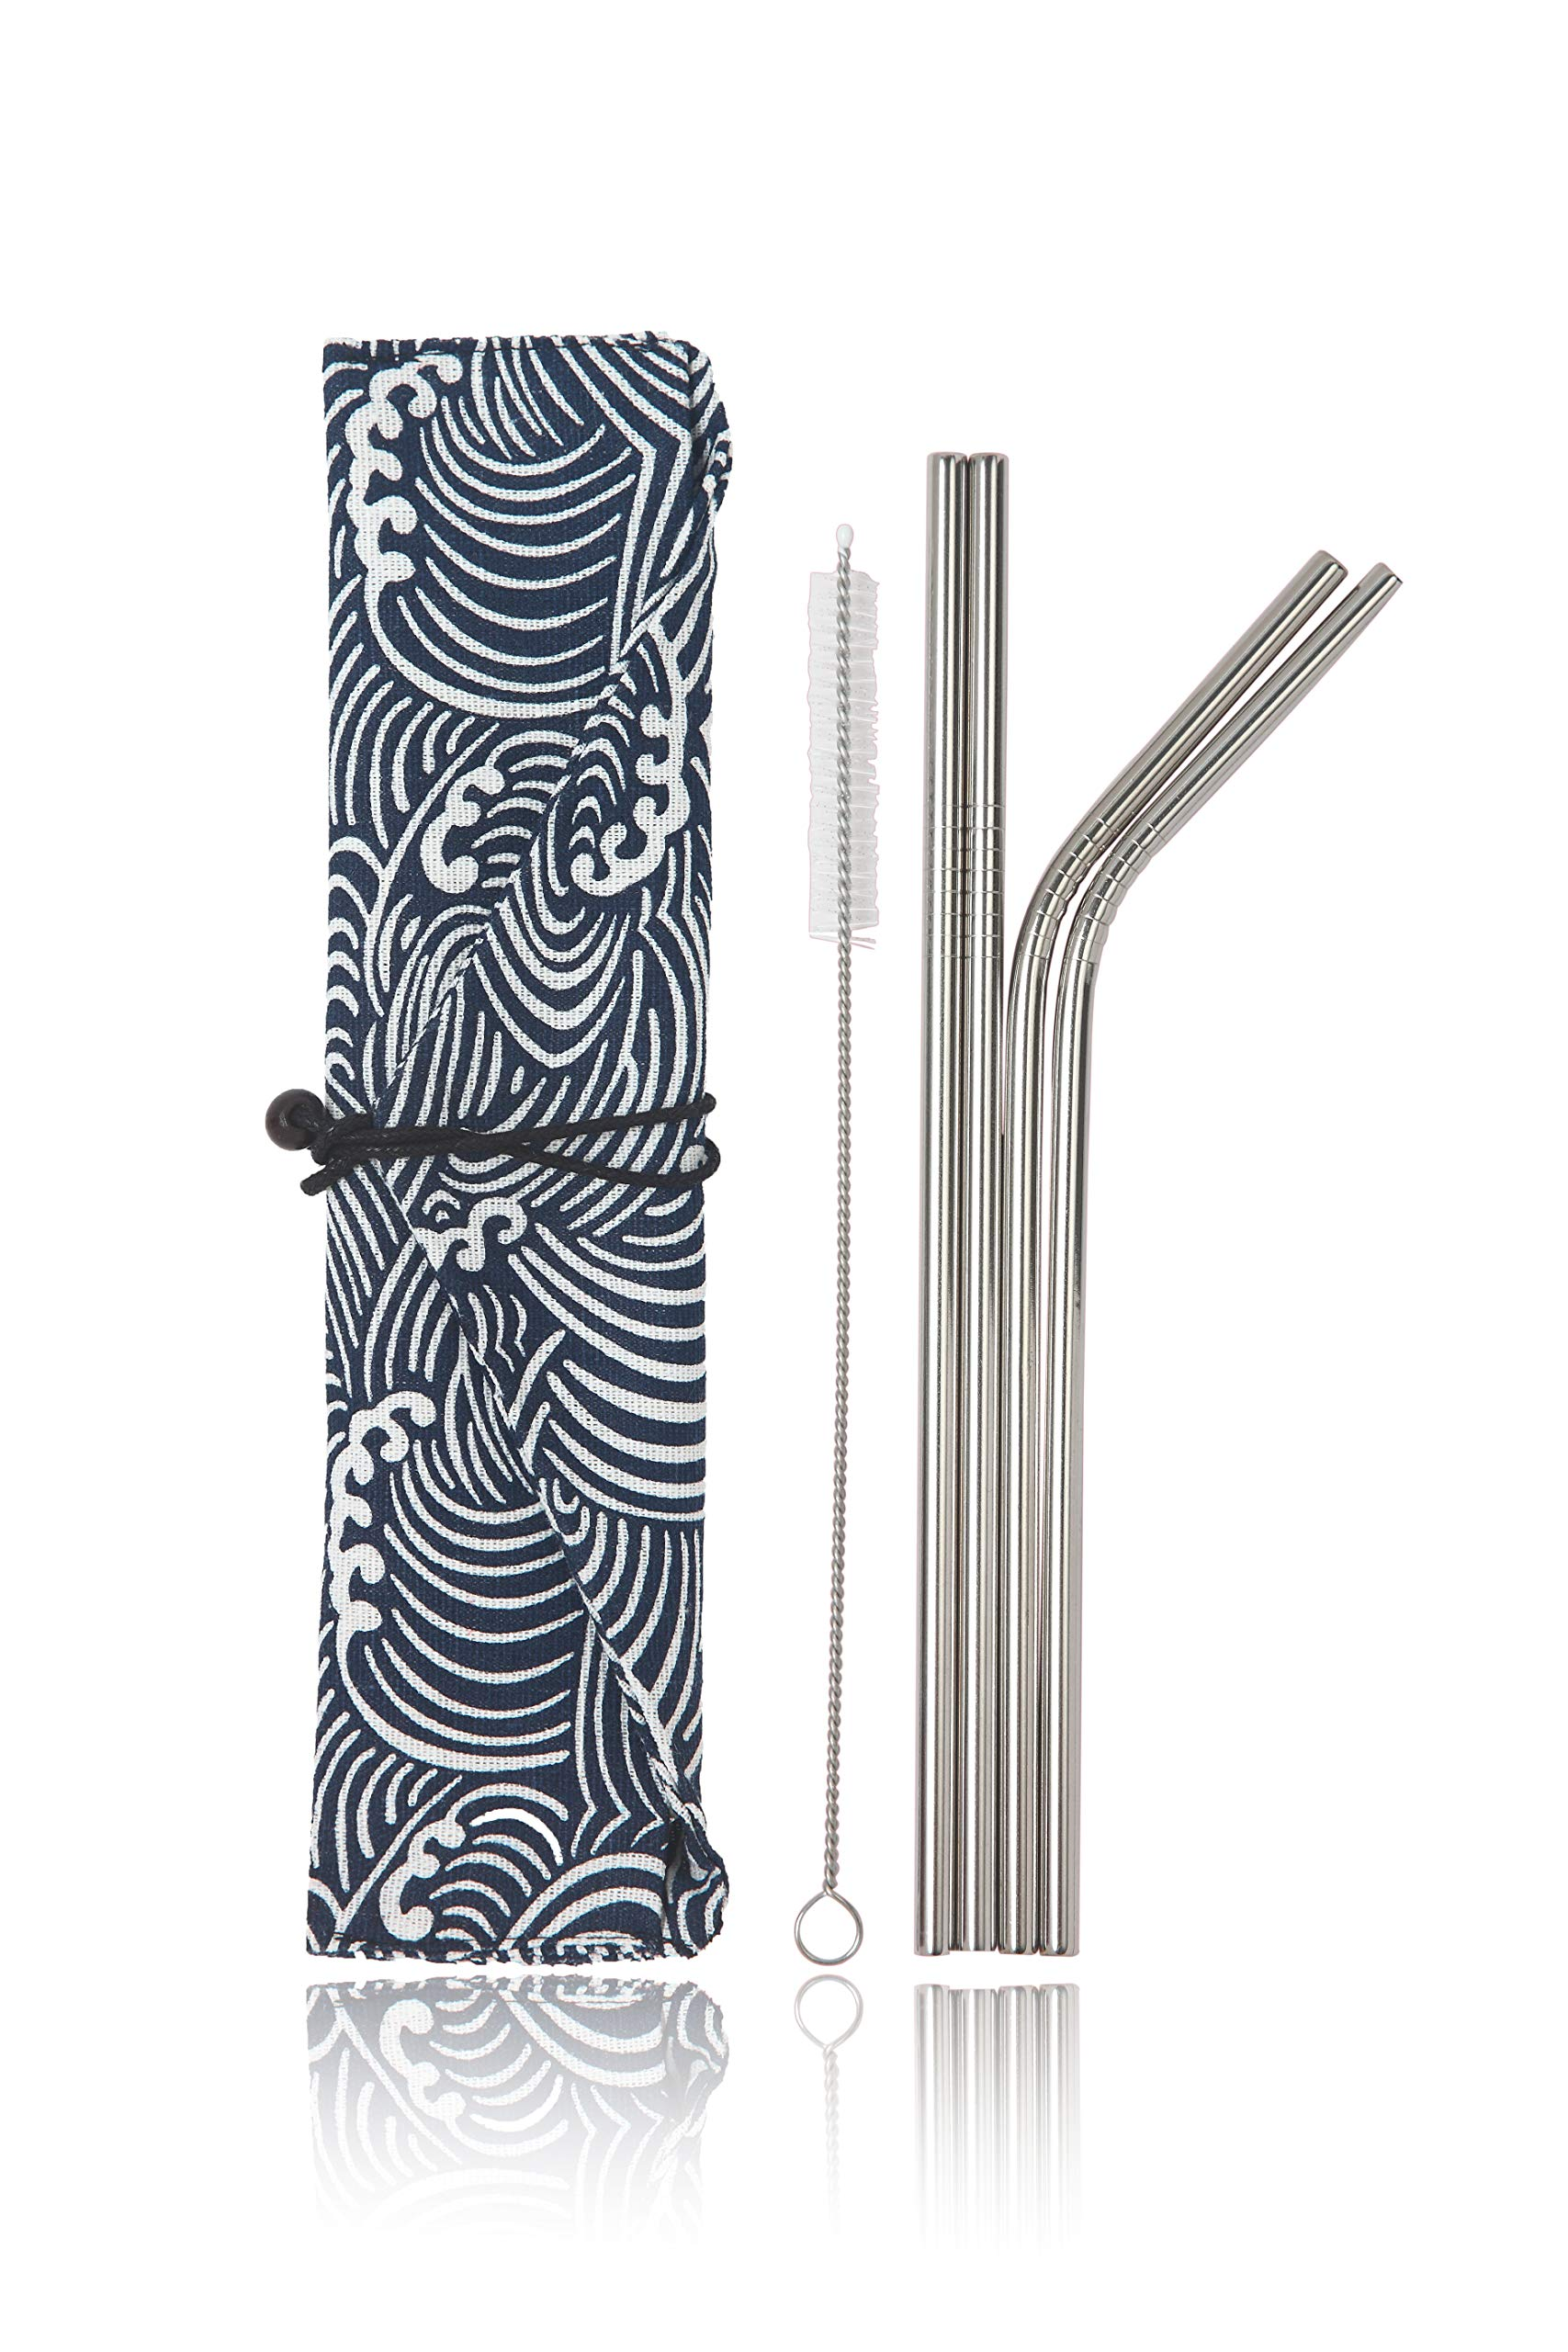 Stainless Steel Reusable Metal Straws -Portable Food Grade 4 Pack 8.5'' Cleaning Brush and Stylish Cloth Bag case Included. Fit 20 oz. tumblers. (Small Waves)